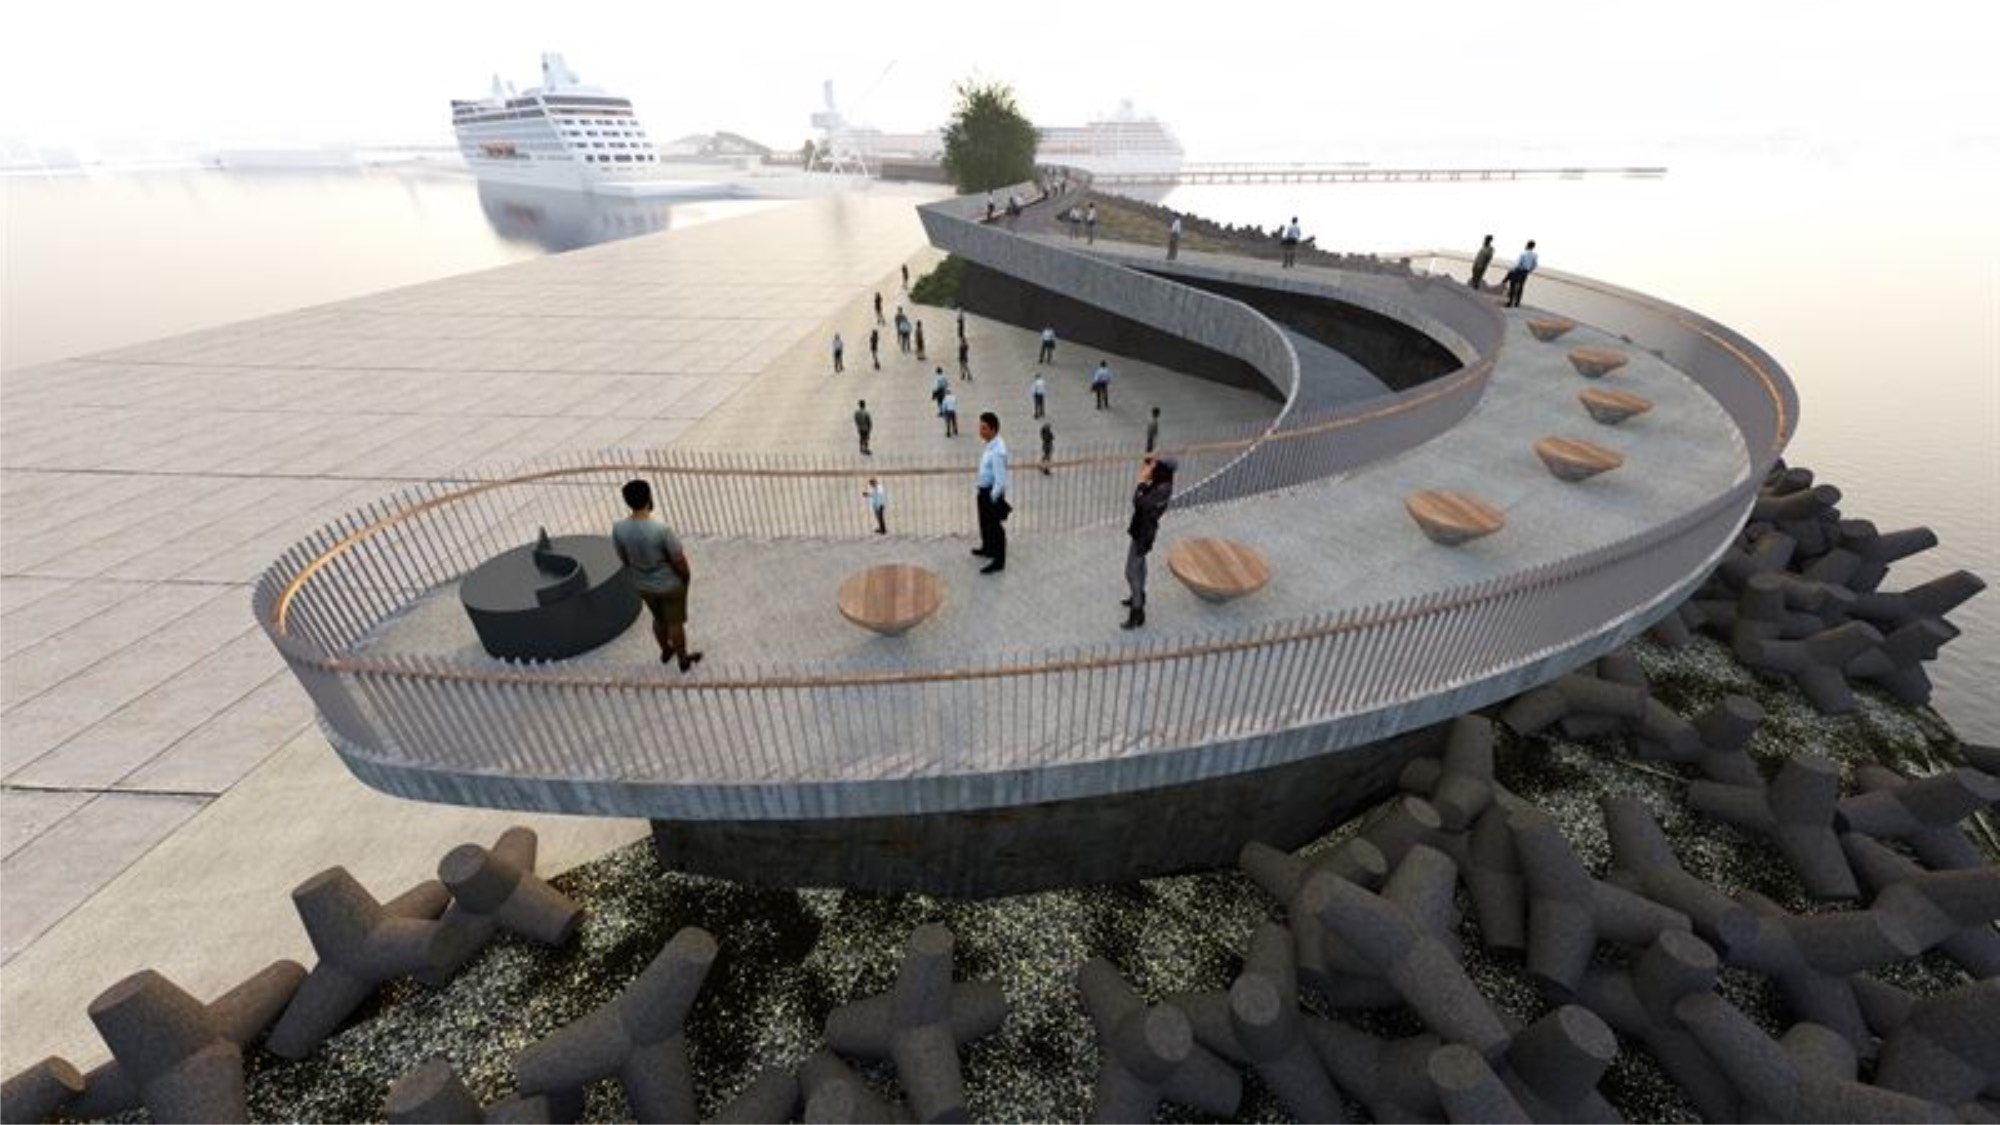 An illustration of a pedestrian promenade by the sea